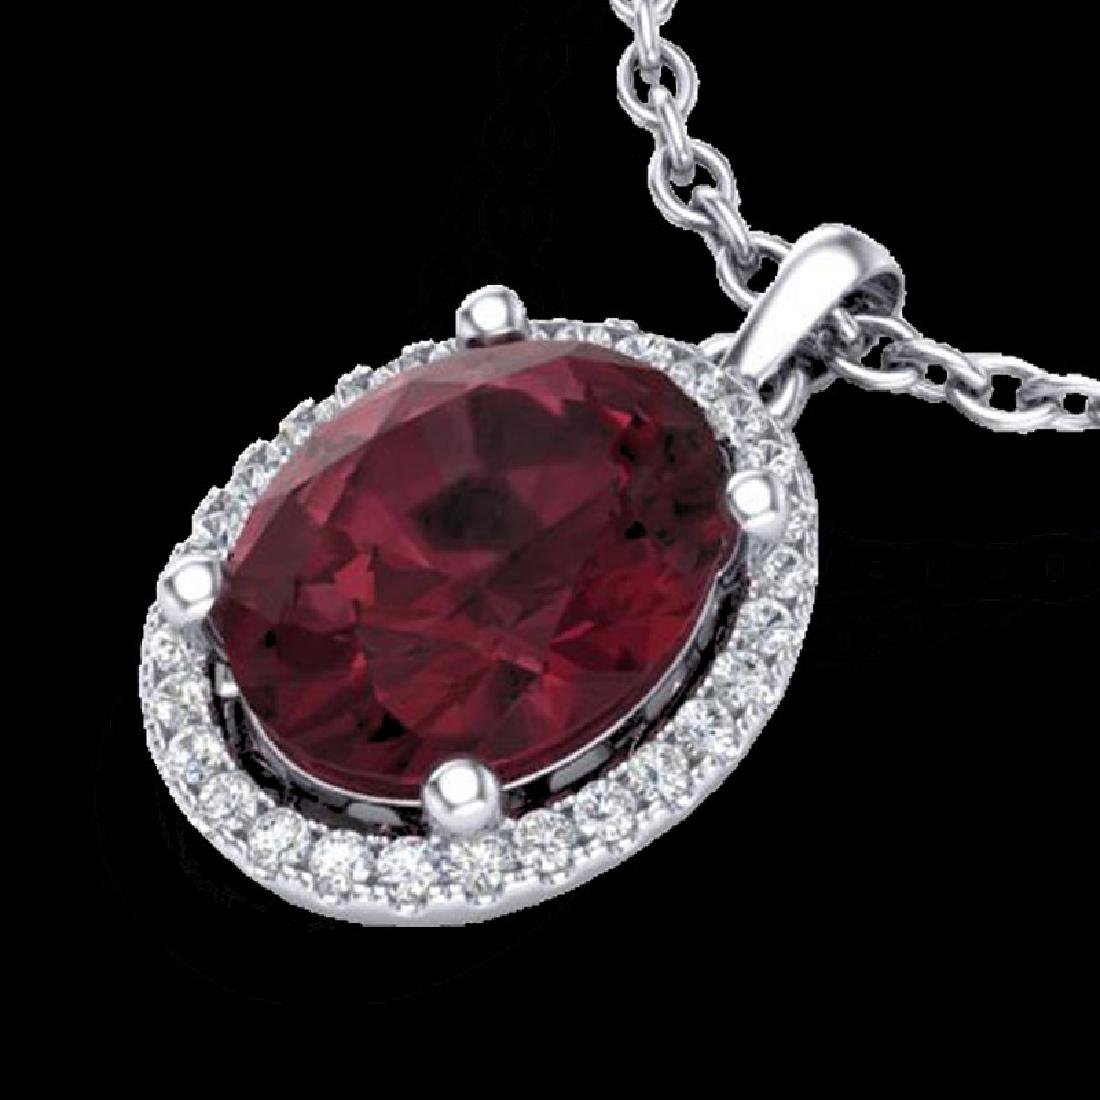 2.50 CTW Garnet & Micro Pave VS/SI Diamond Necklace